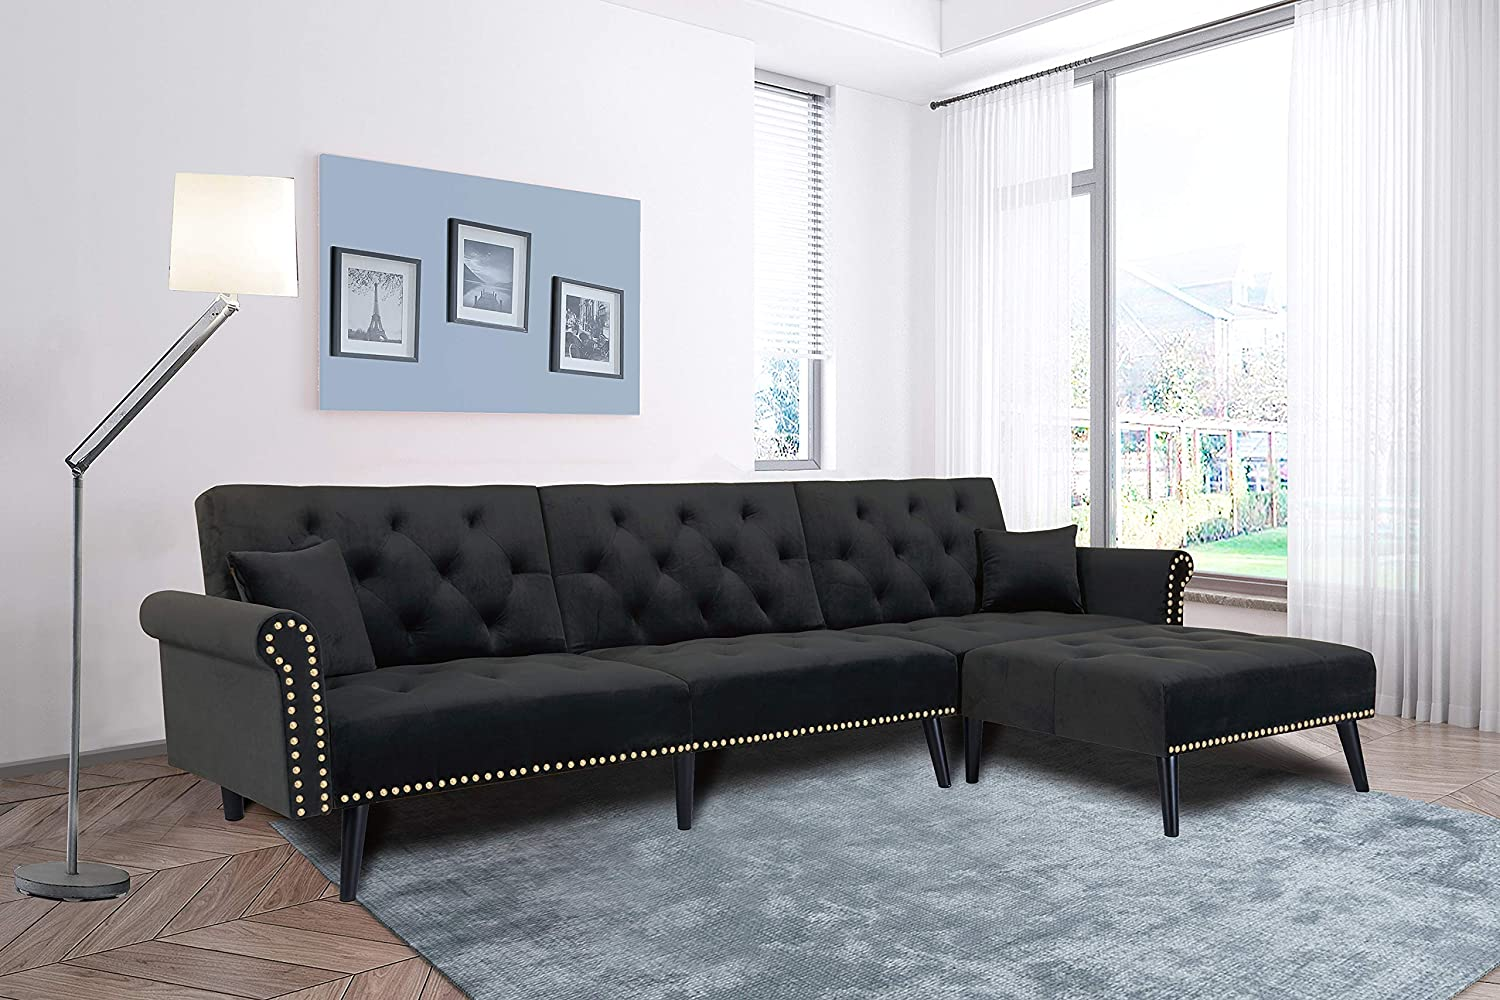 - Amazon.com: Black Sectional Sofa Sleeper Bed,JULYFOX 900 LB Heavy